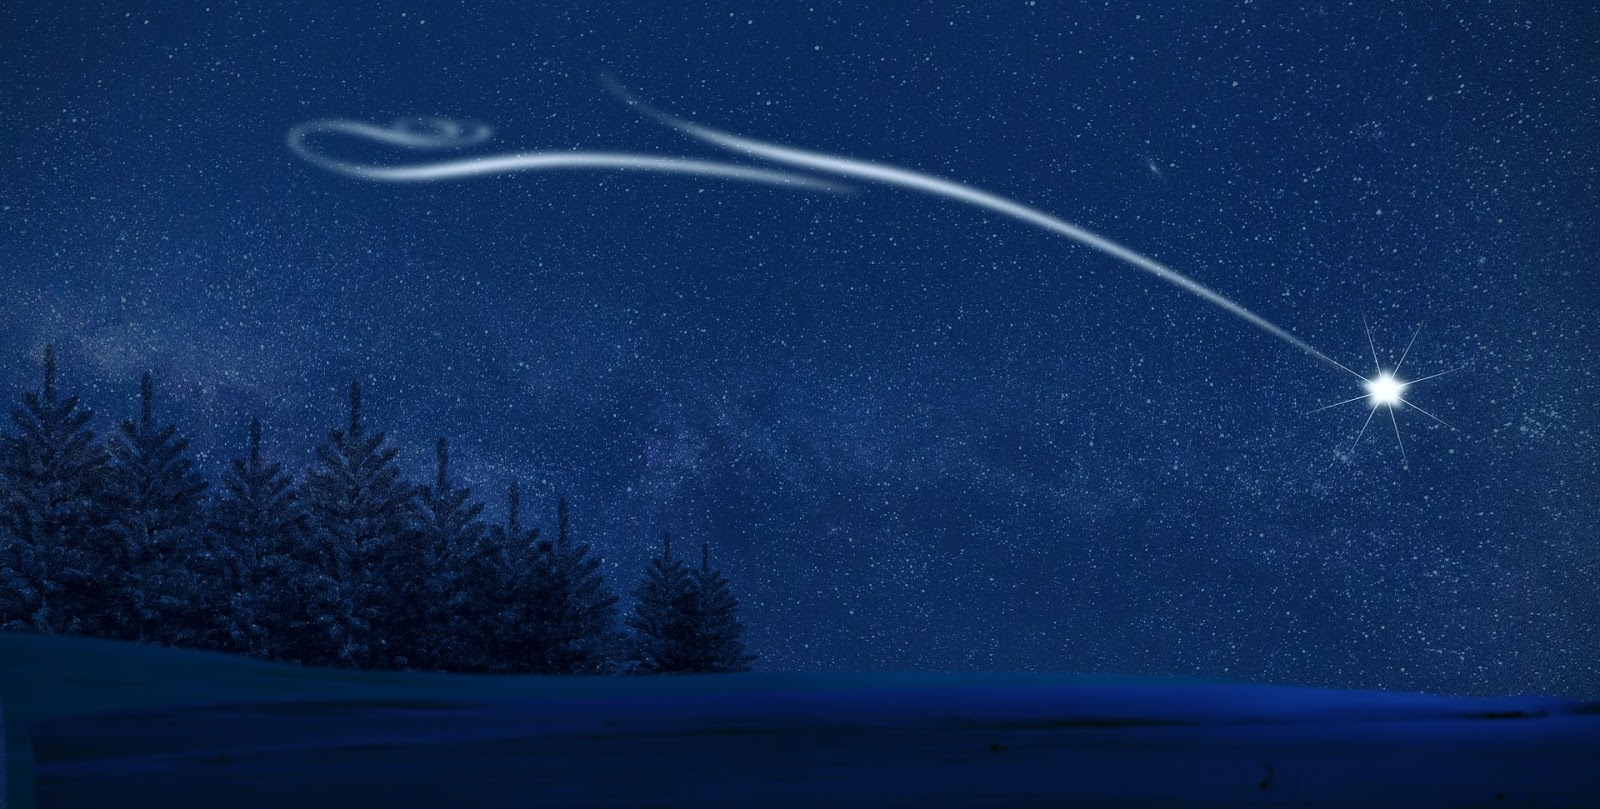 christmas-desktop -wallpaper-image4